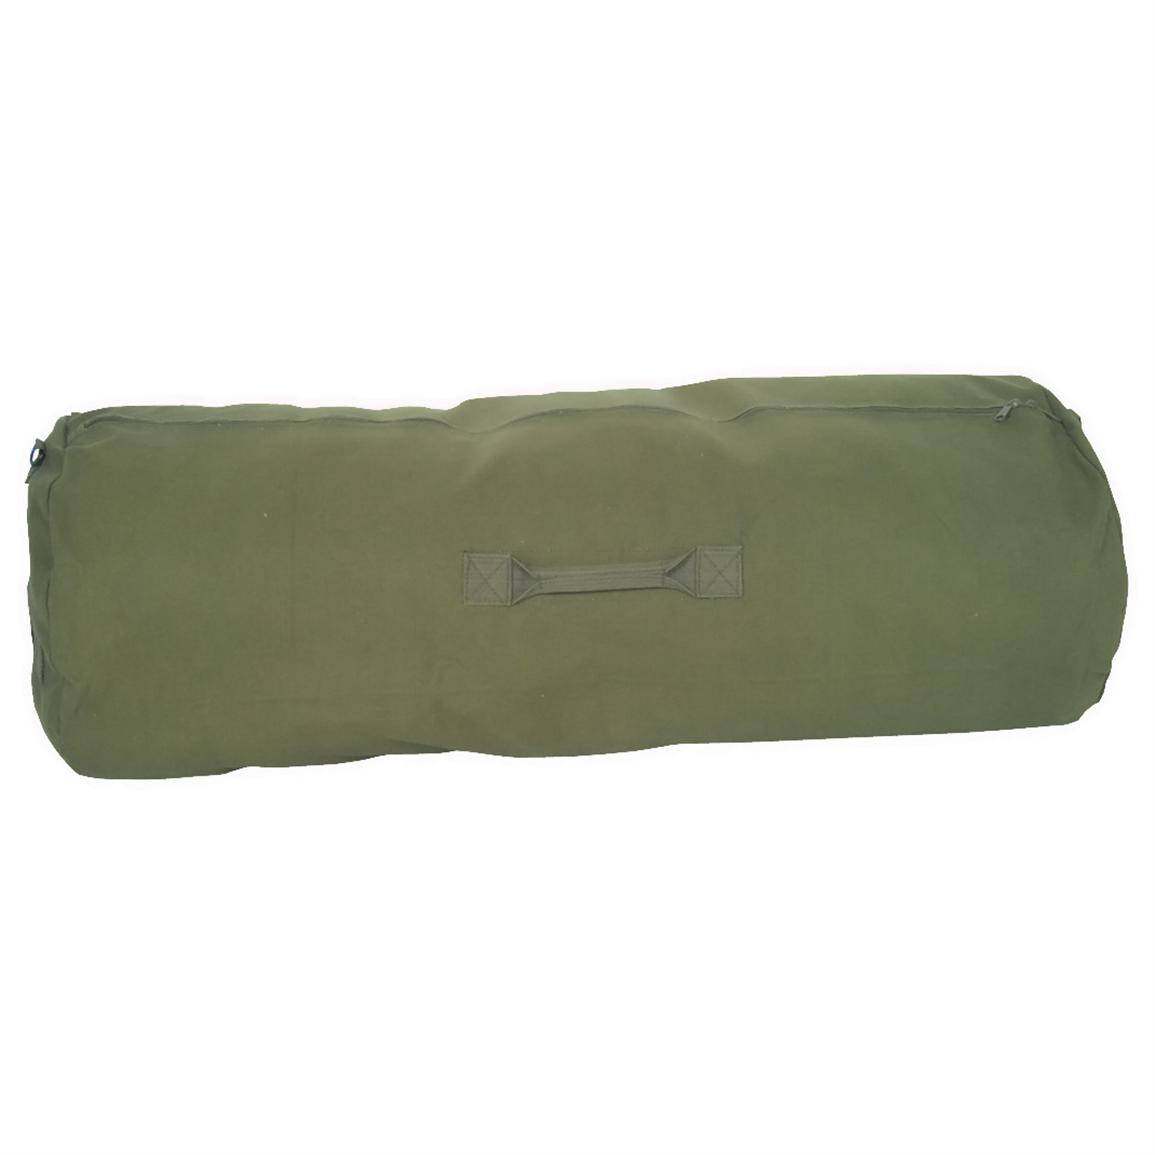 Fox Outdoor GI-Style Duffel Bag, Olive Drab